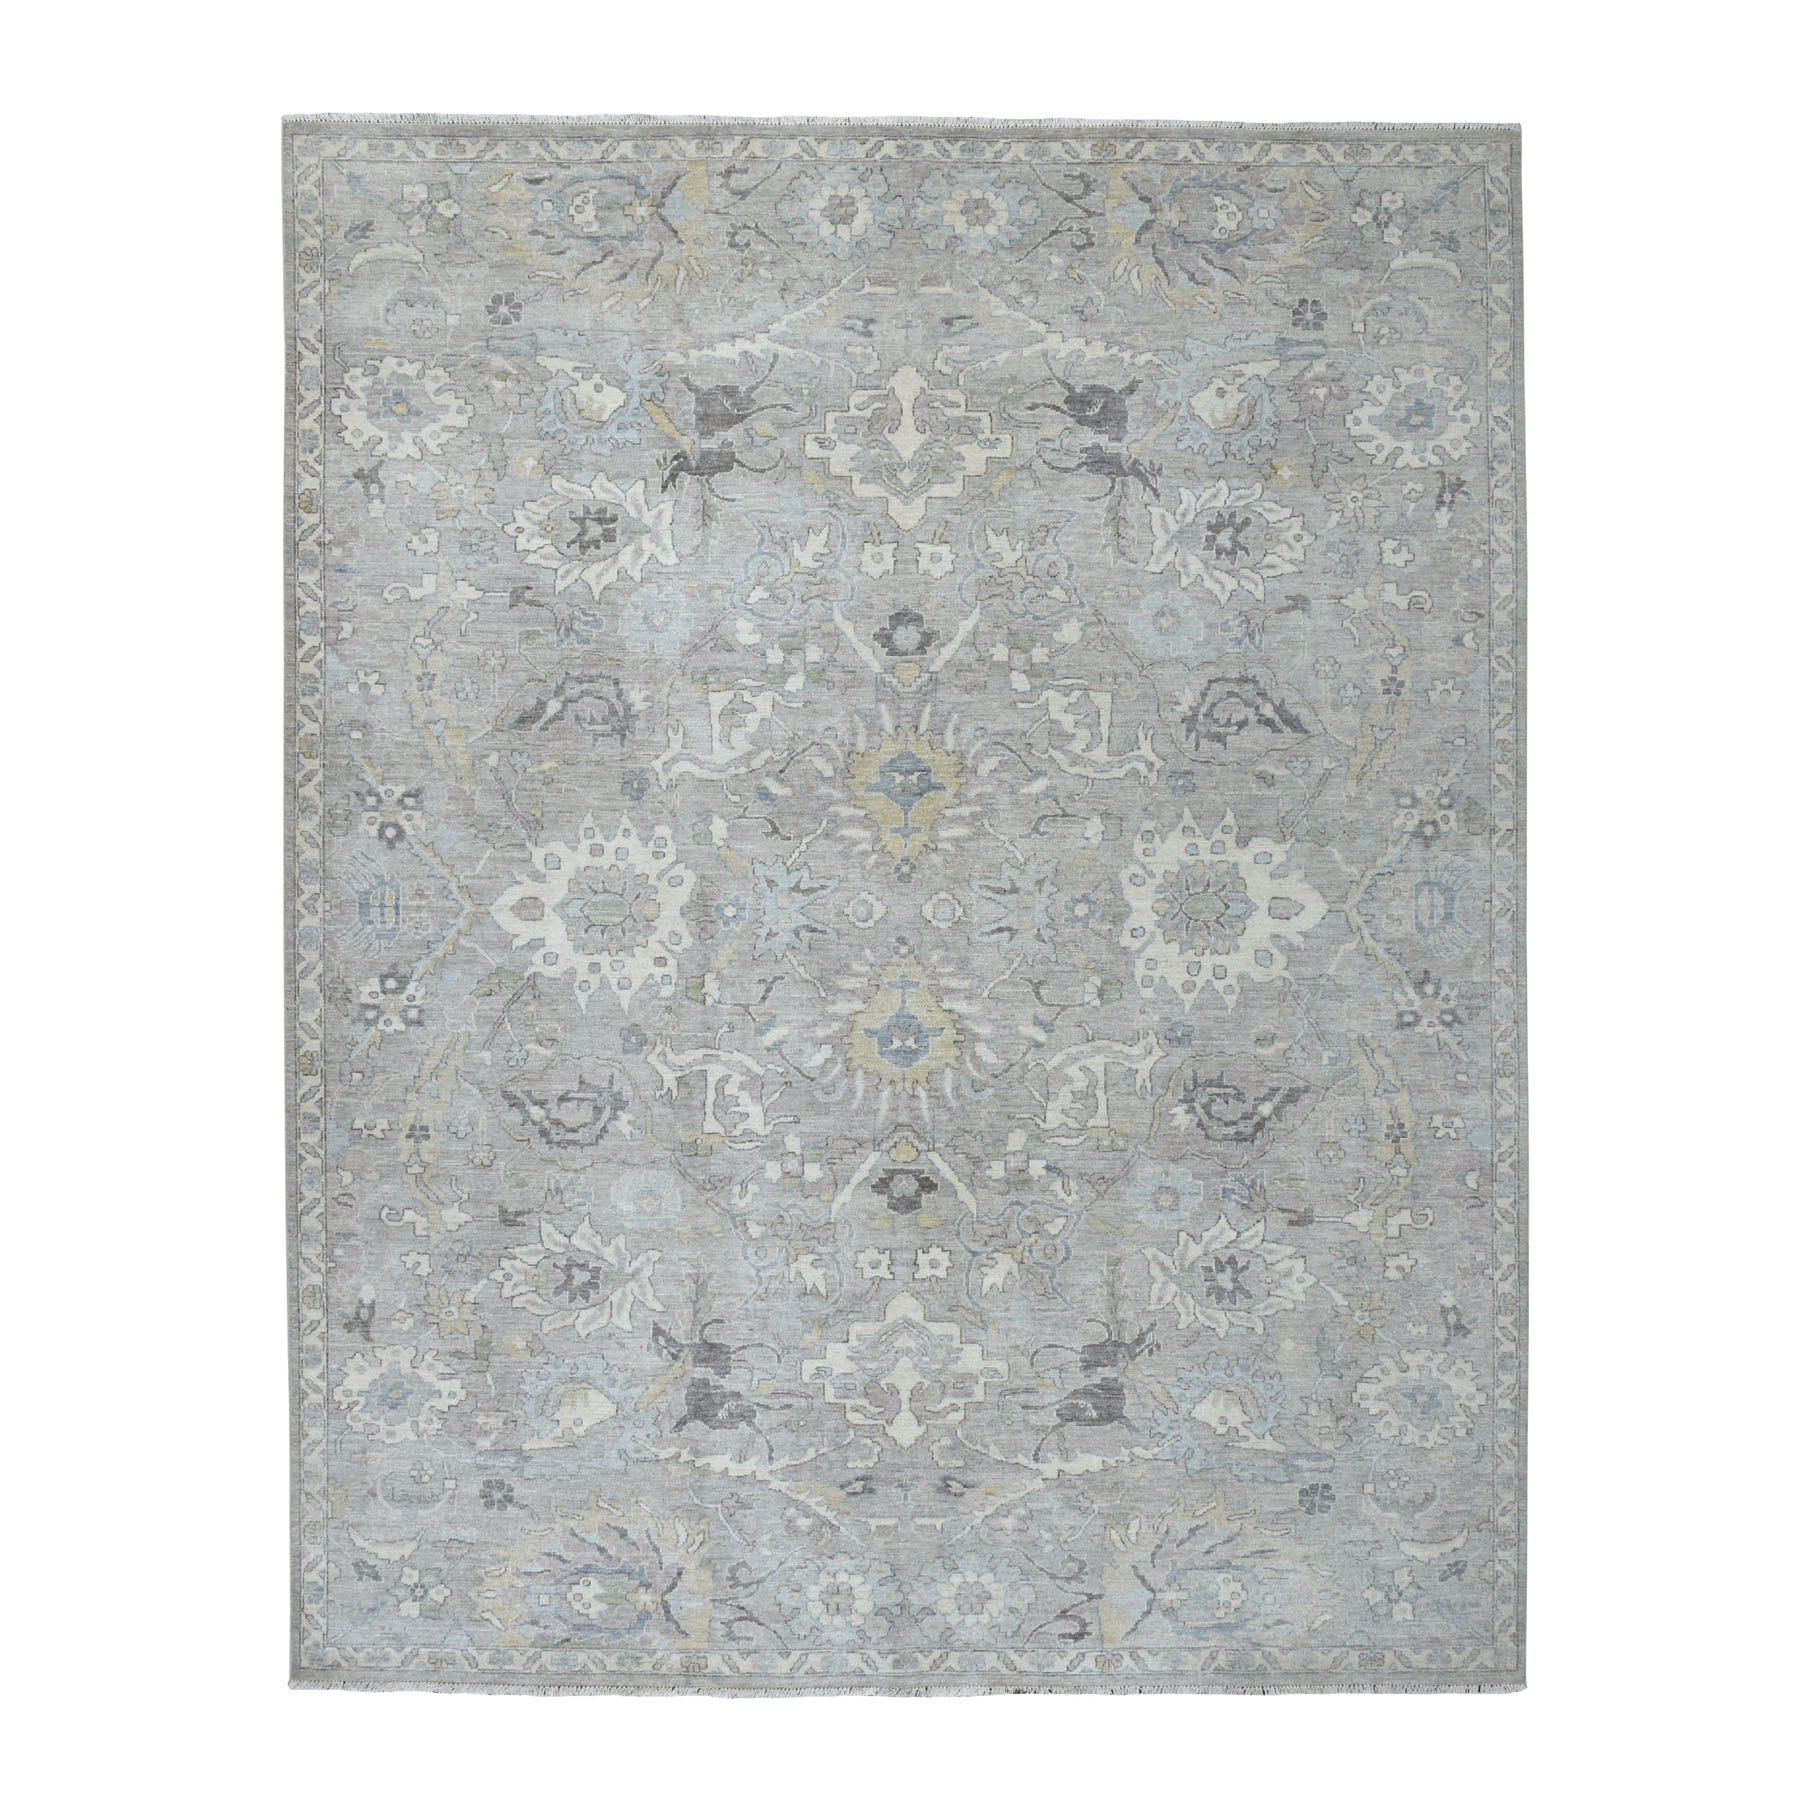 "7'10""x9'10"" White Wash Peshawar Pure Wool Hand Knotted Oriental Rug"